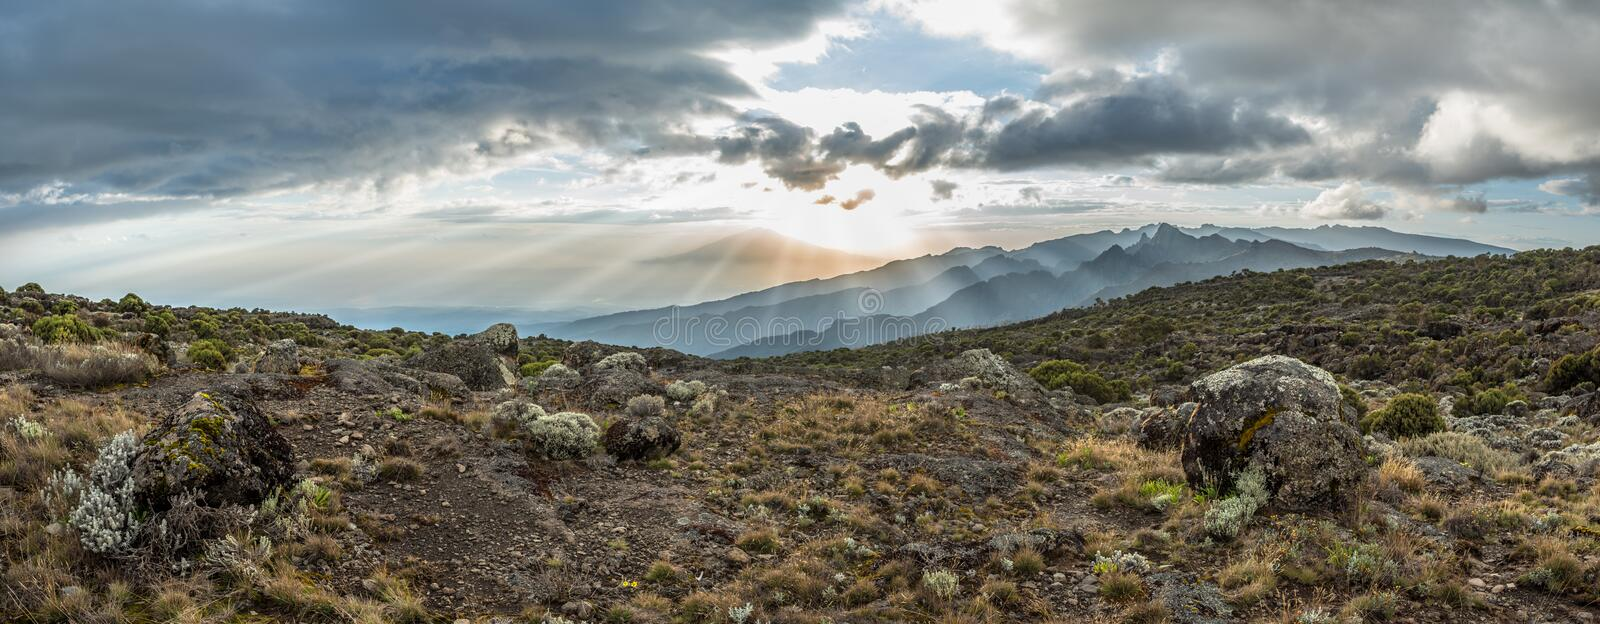 Panoramic view of sunset over Mount Meru in Tanzania taken from the Shira Cave camp on the Machame route of Kilimanjaro. Sunrays burst through the dramatic royalty free stock image